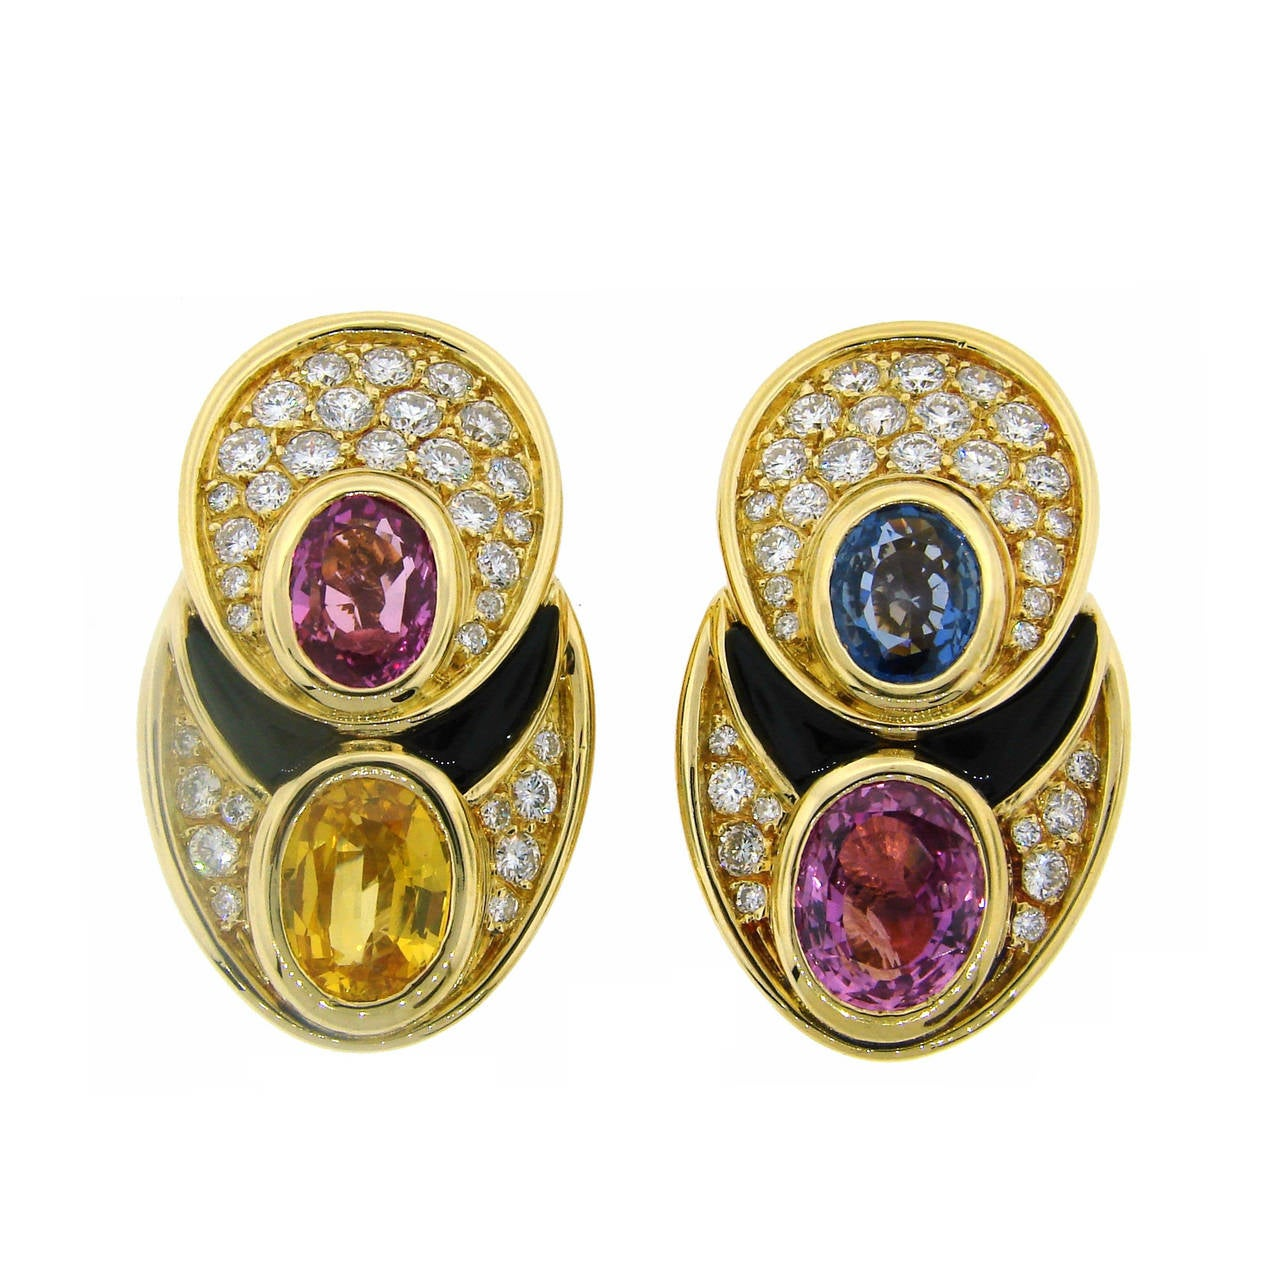 1980s Marina B Sapphire Diamond Gold Earrings